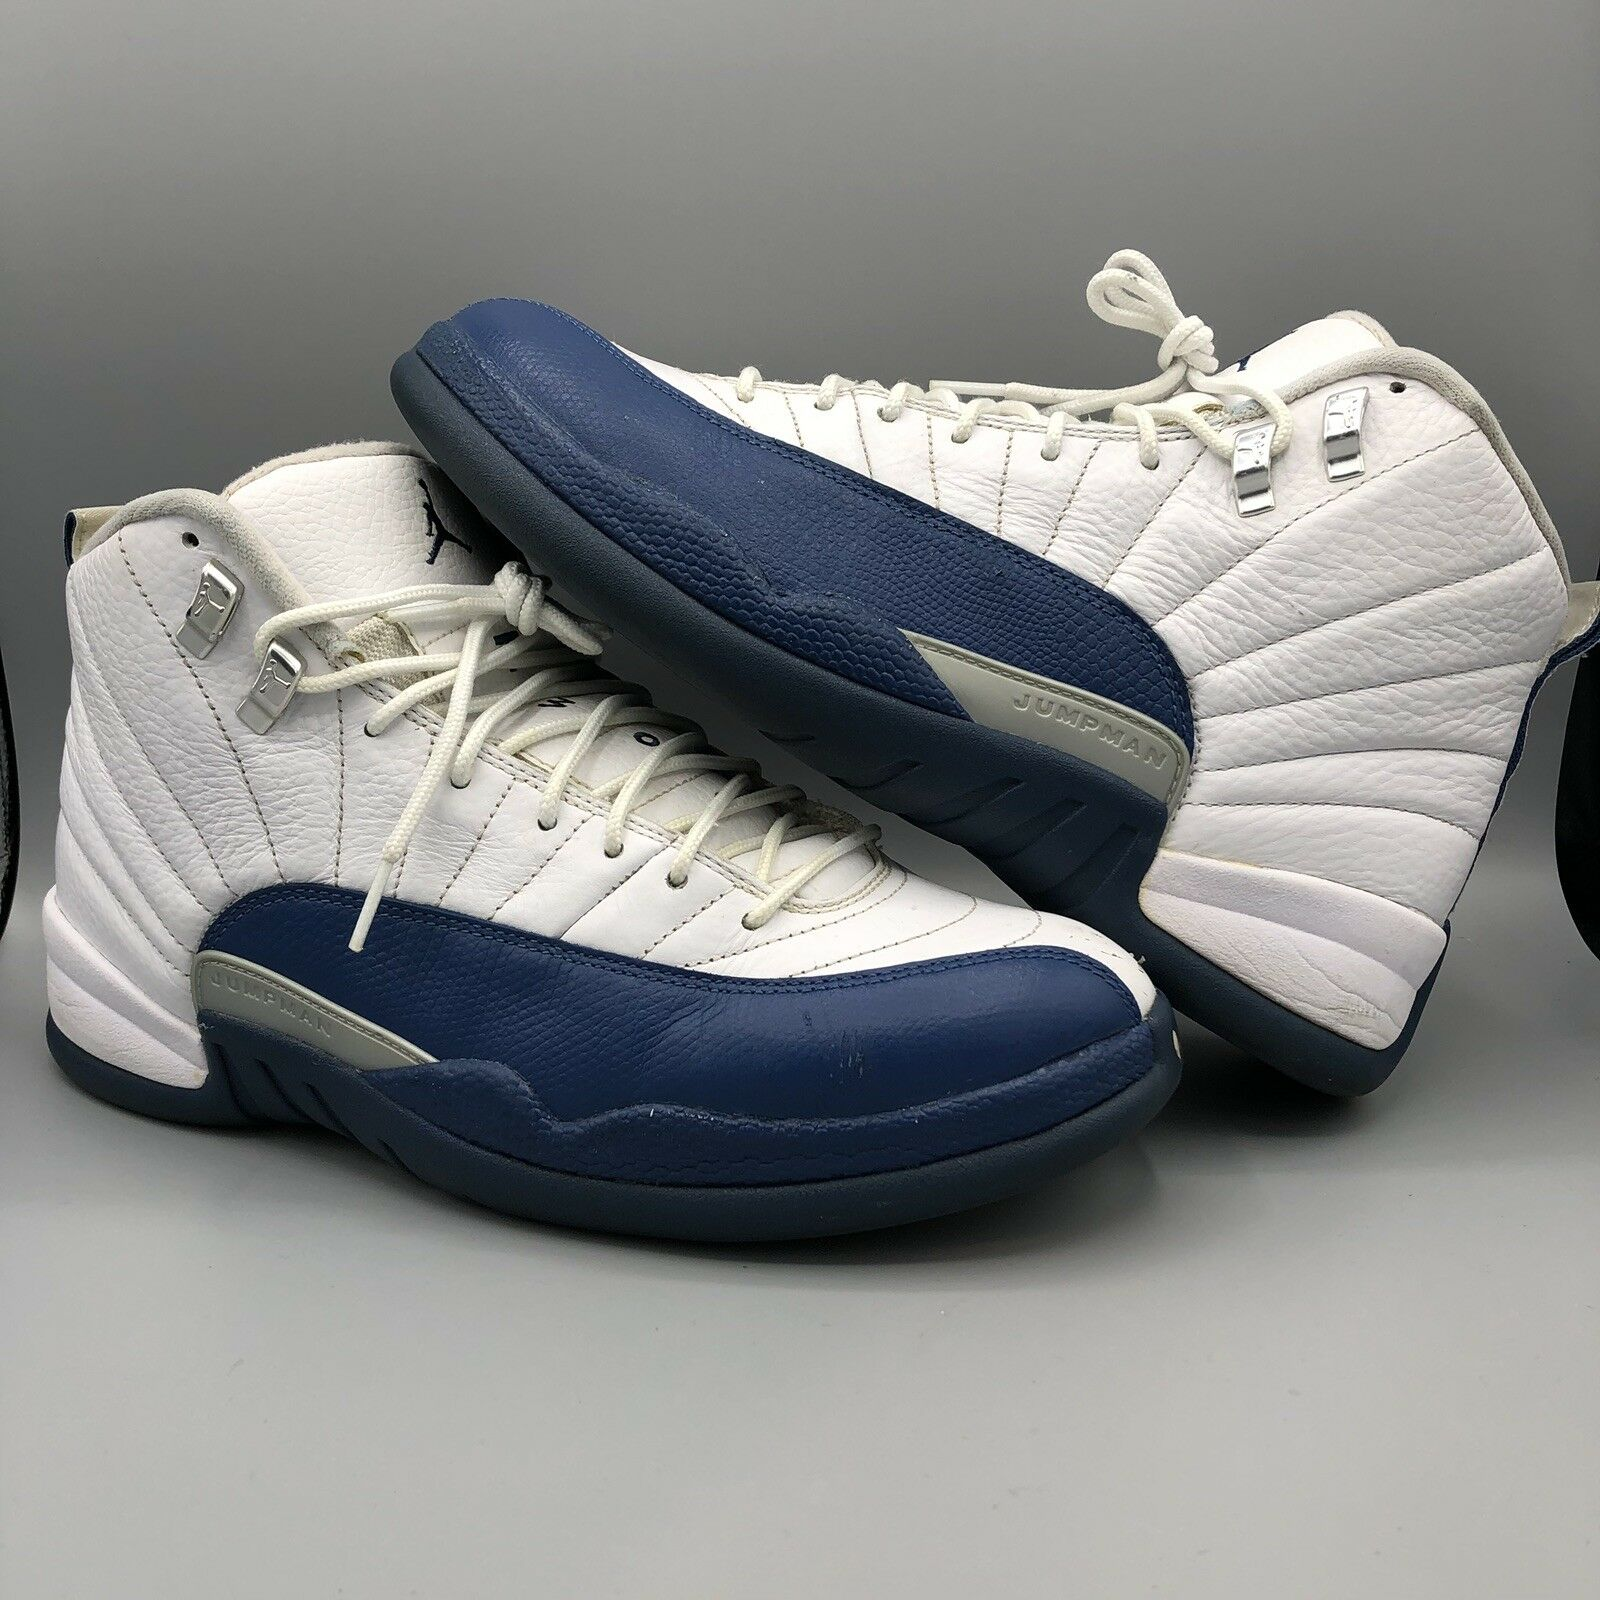 separation shoes 78a91 eaa4f Nike Air Jordan Retro XII French bluee 130690 113 113 113 Size 10 Taxi CDP  III